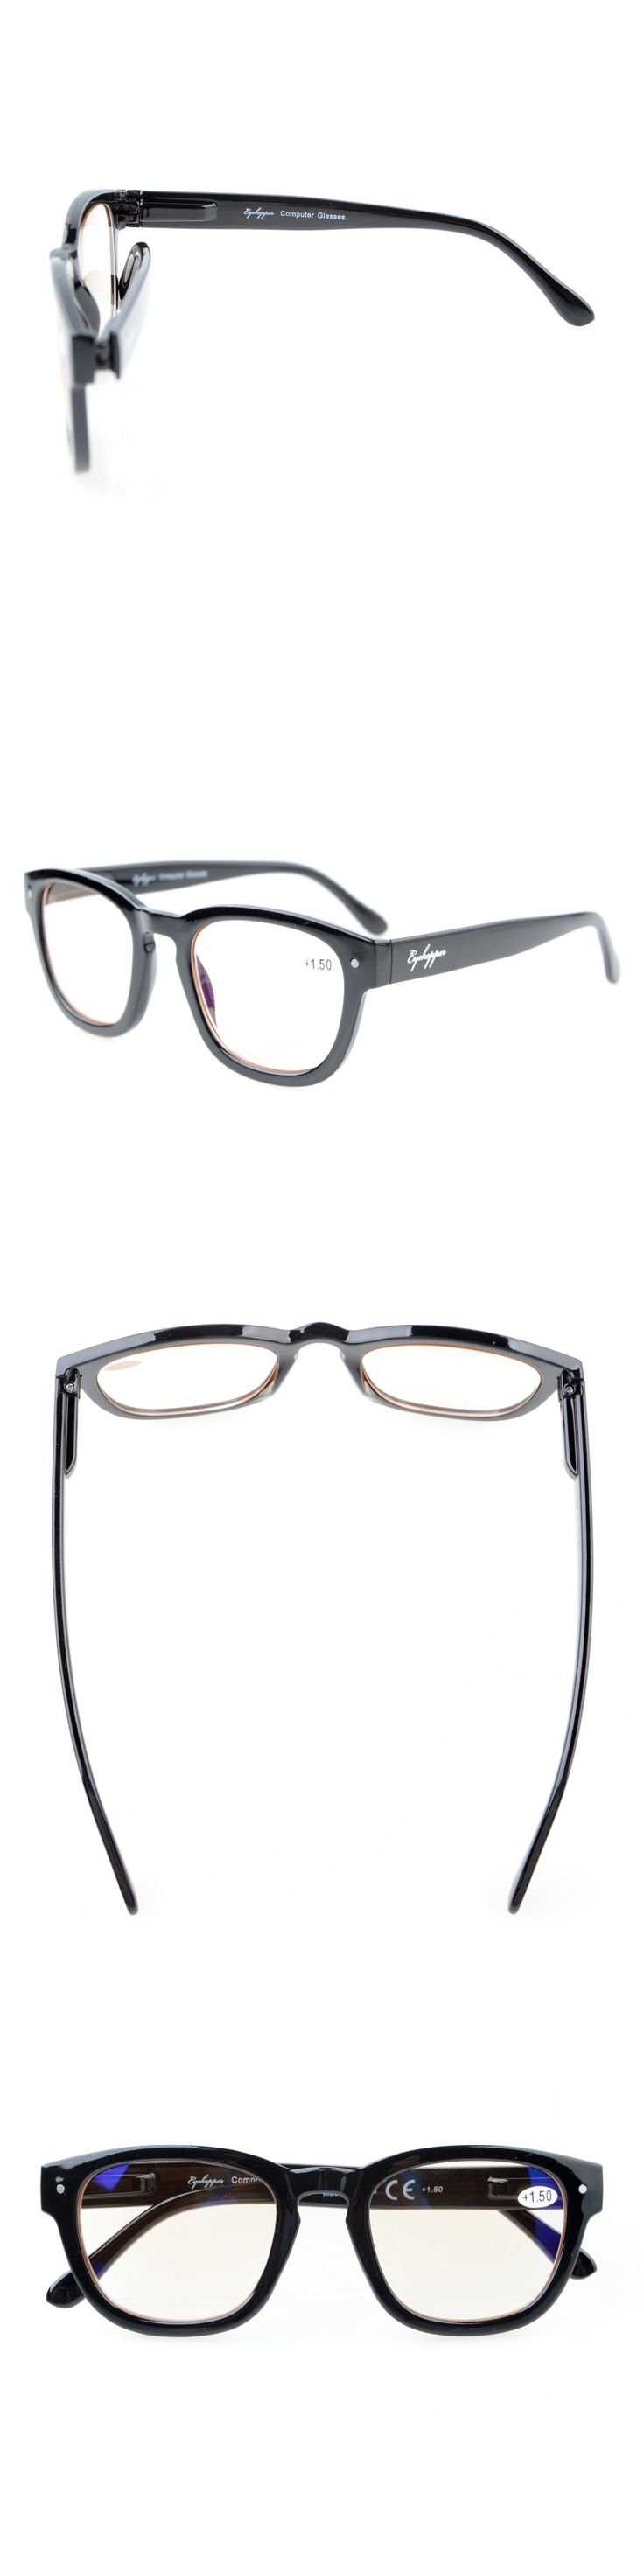 CG089 Eyekepper Amber Tinted Lenses Computer Readers Professor Vintage Style Spring Hinges Arms Computer Reading Glasses